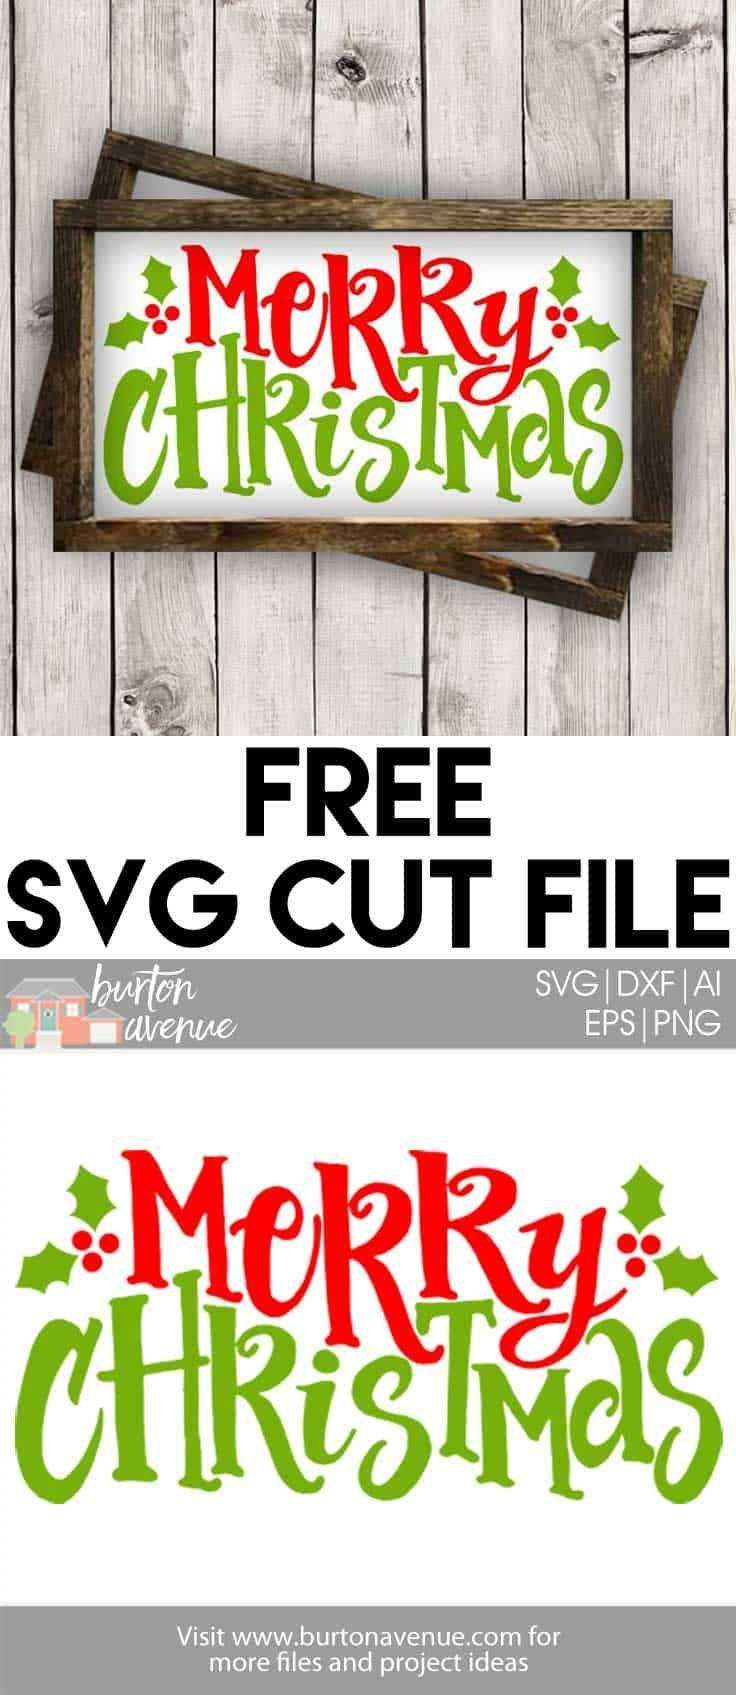 Free Svg Cut File Merry Christmas W Holly Berry Fonts